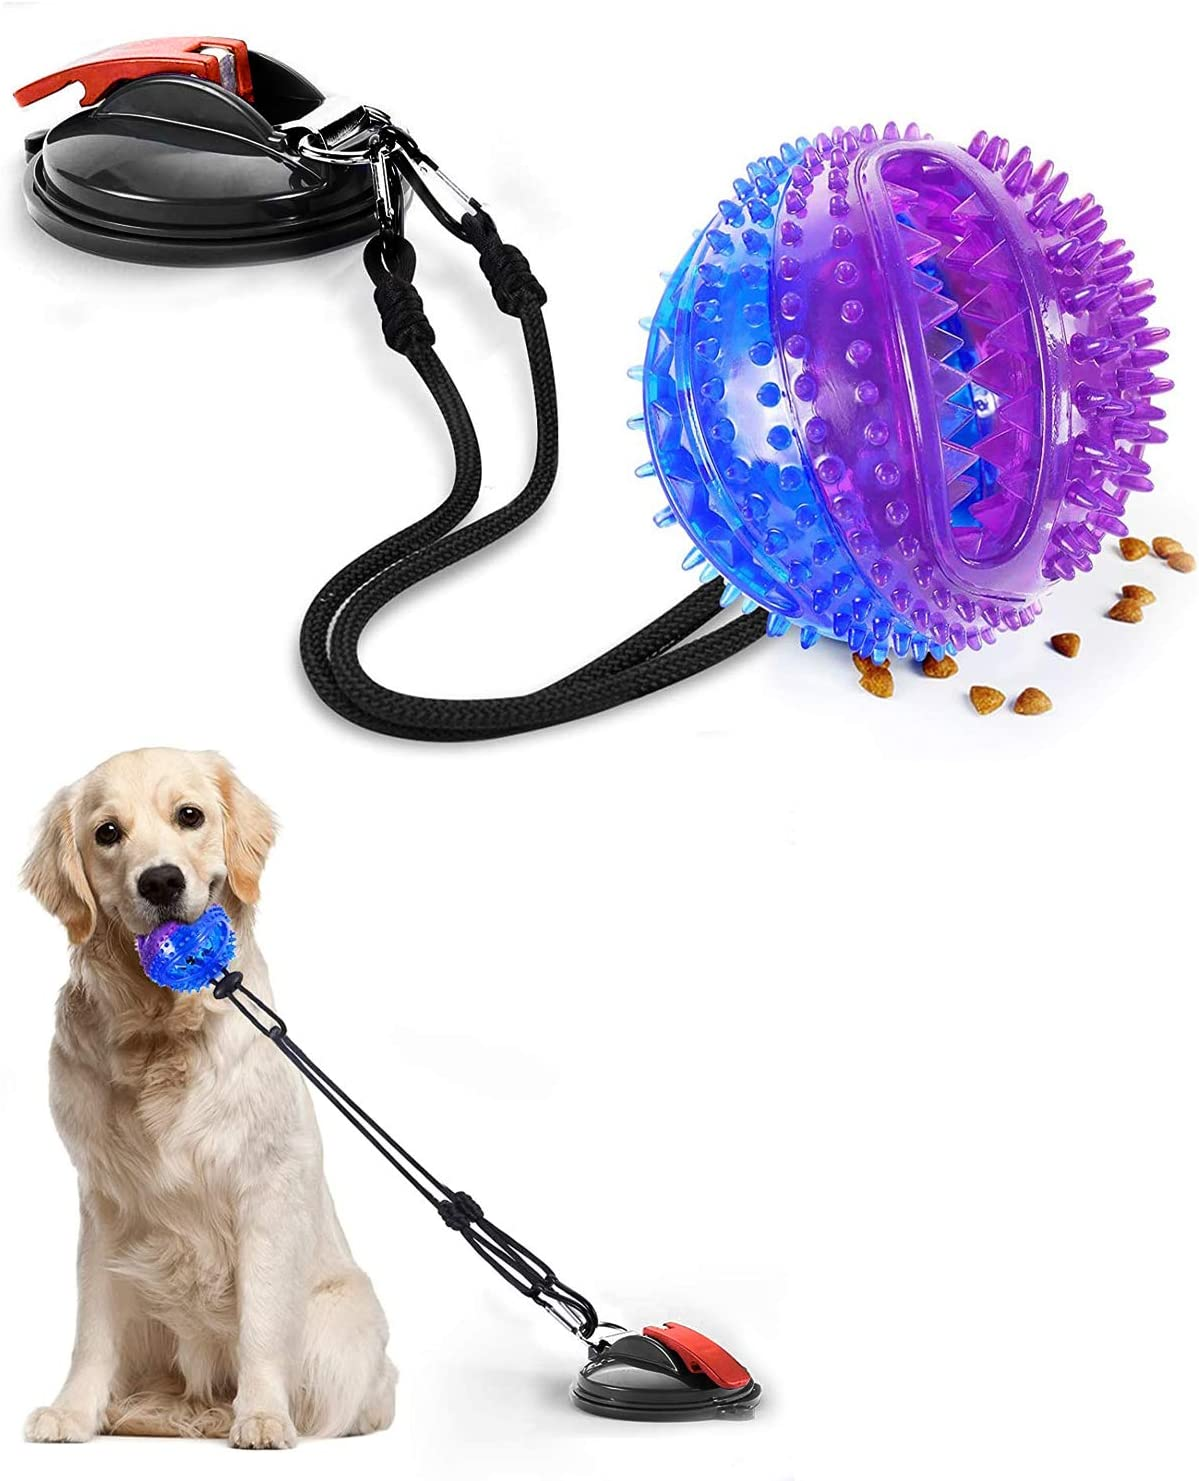 Efoee Dog Chew Toy, Interactive Dog Toys for Pet Aggressive Chewers, Dog Puzzle Ball Toys with Treat Food Dispensing, Dog Ball Toy with Suction Cup for Small Medium and Large Dogs (Purple)